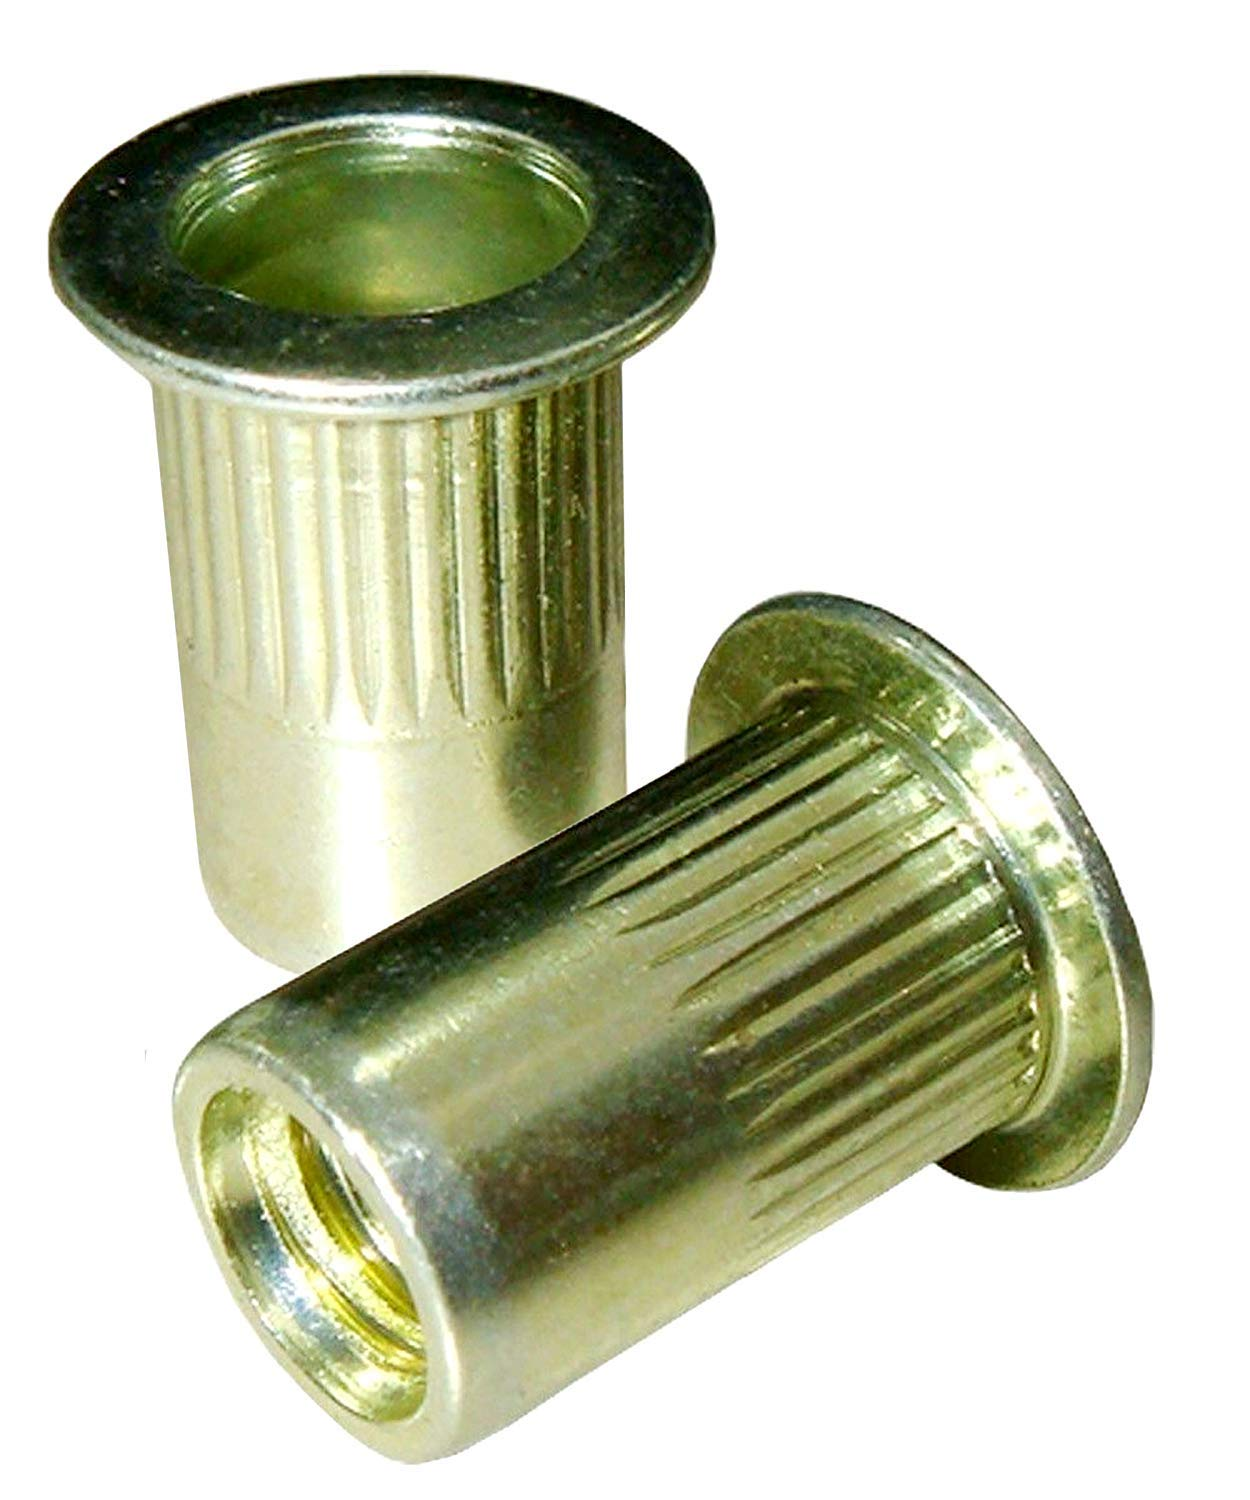 Amazon com: Rivet Nuts Threaded Inserts 25 Pack M6X1 0 Zinc Plated